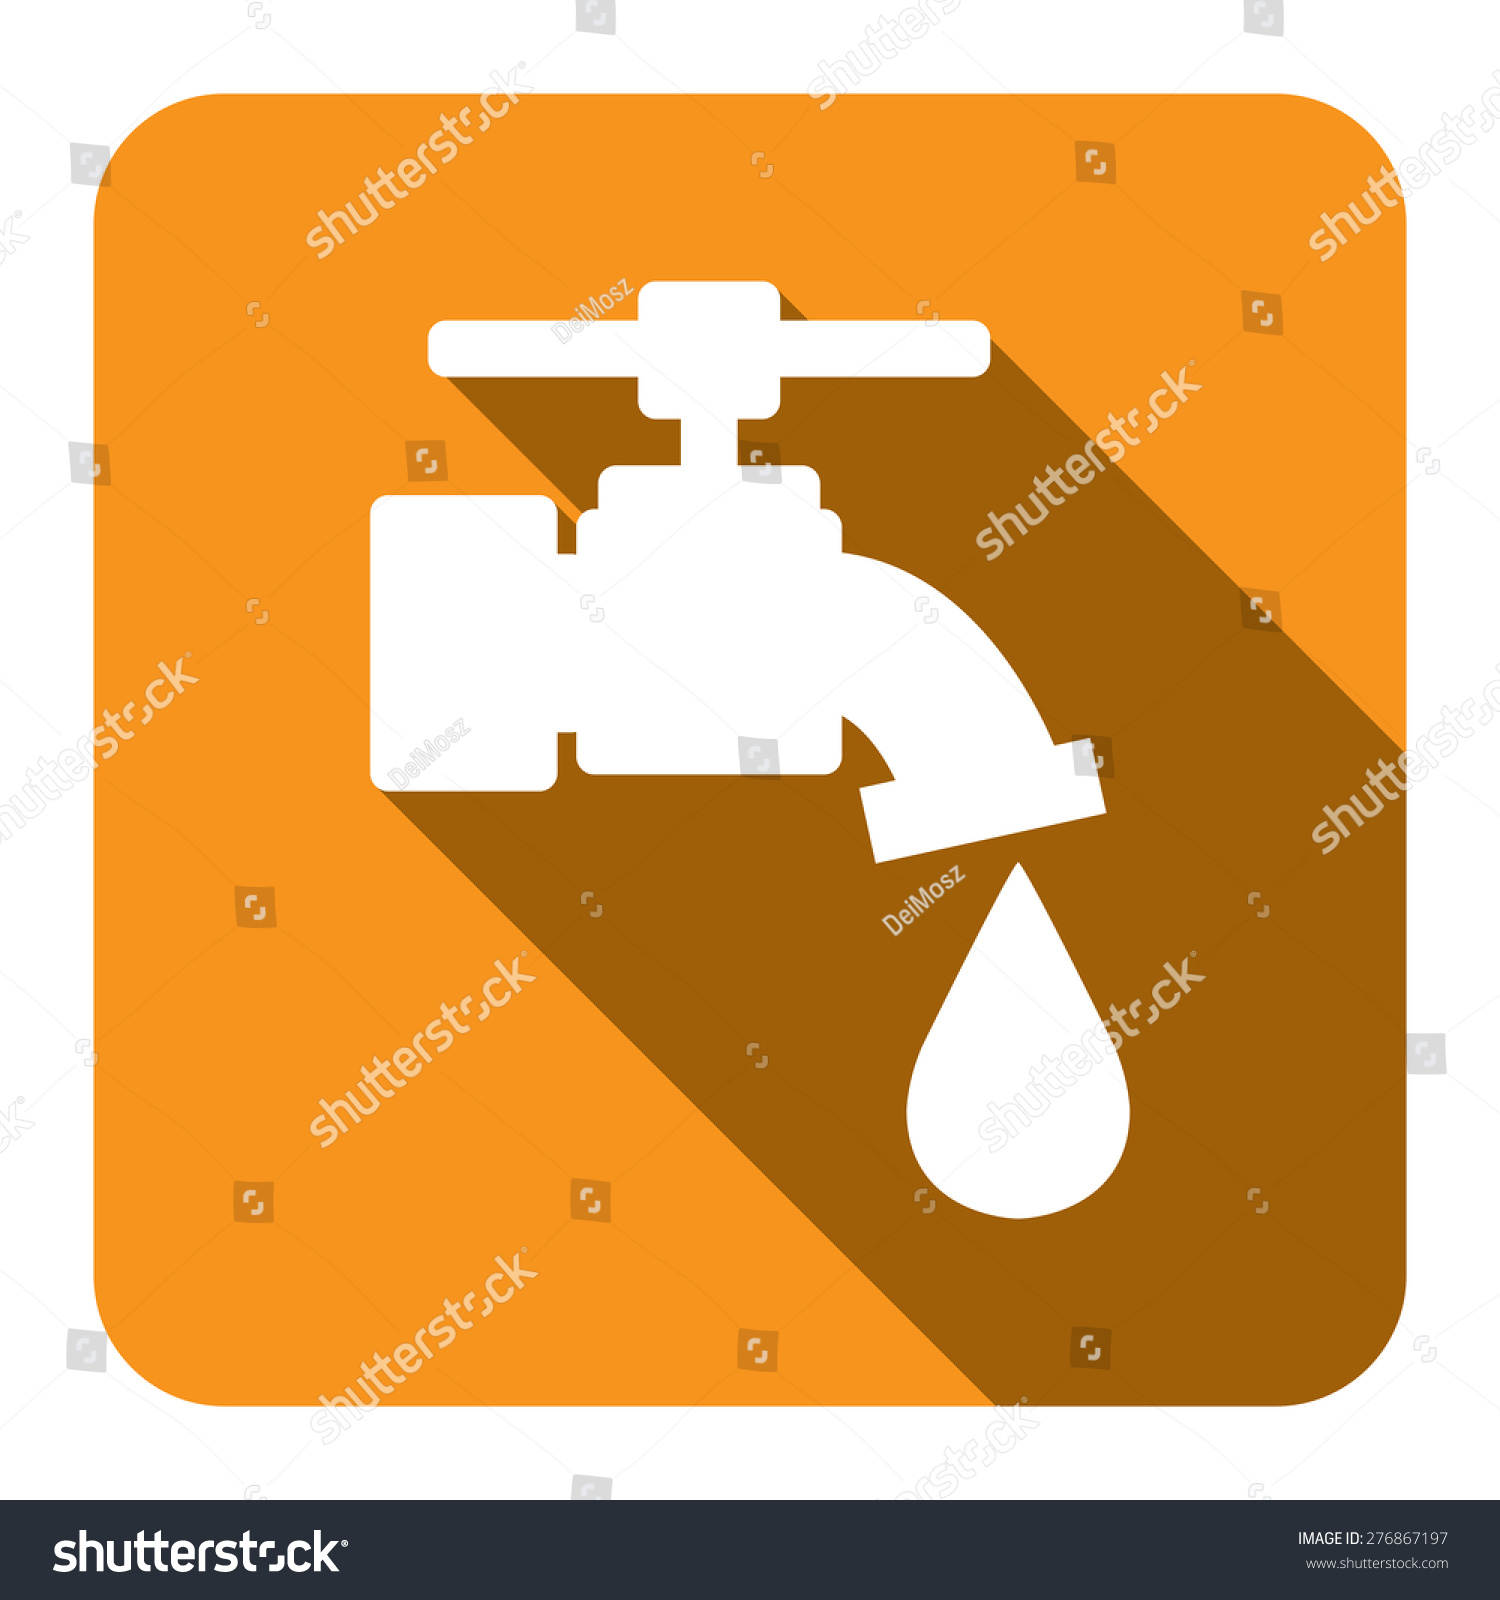 yellow square running water, tap water flat long shadow style icon, label,  sticker